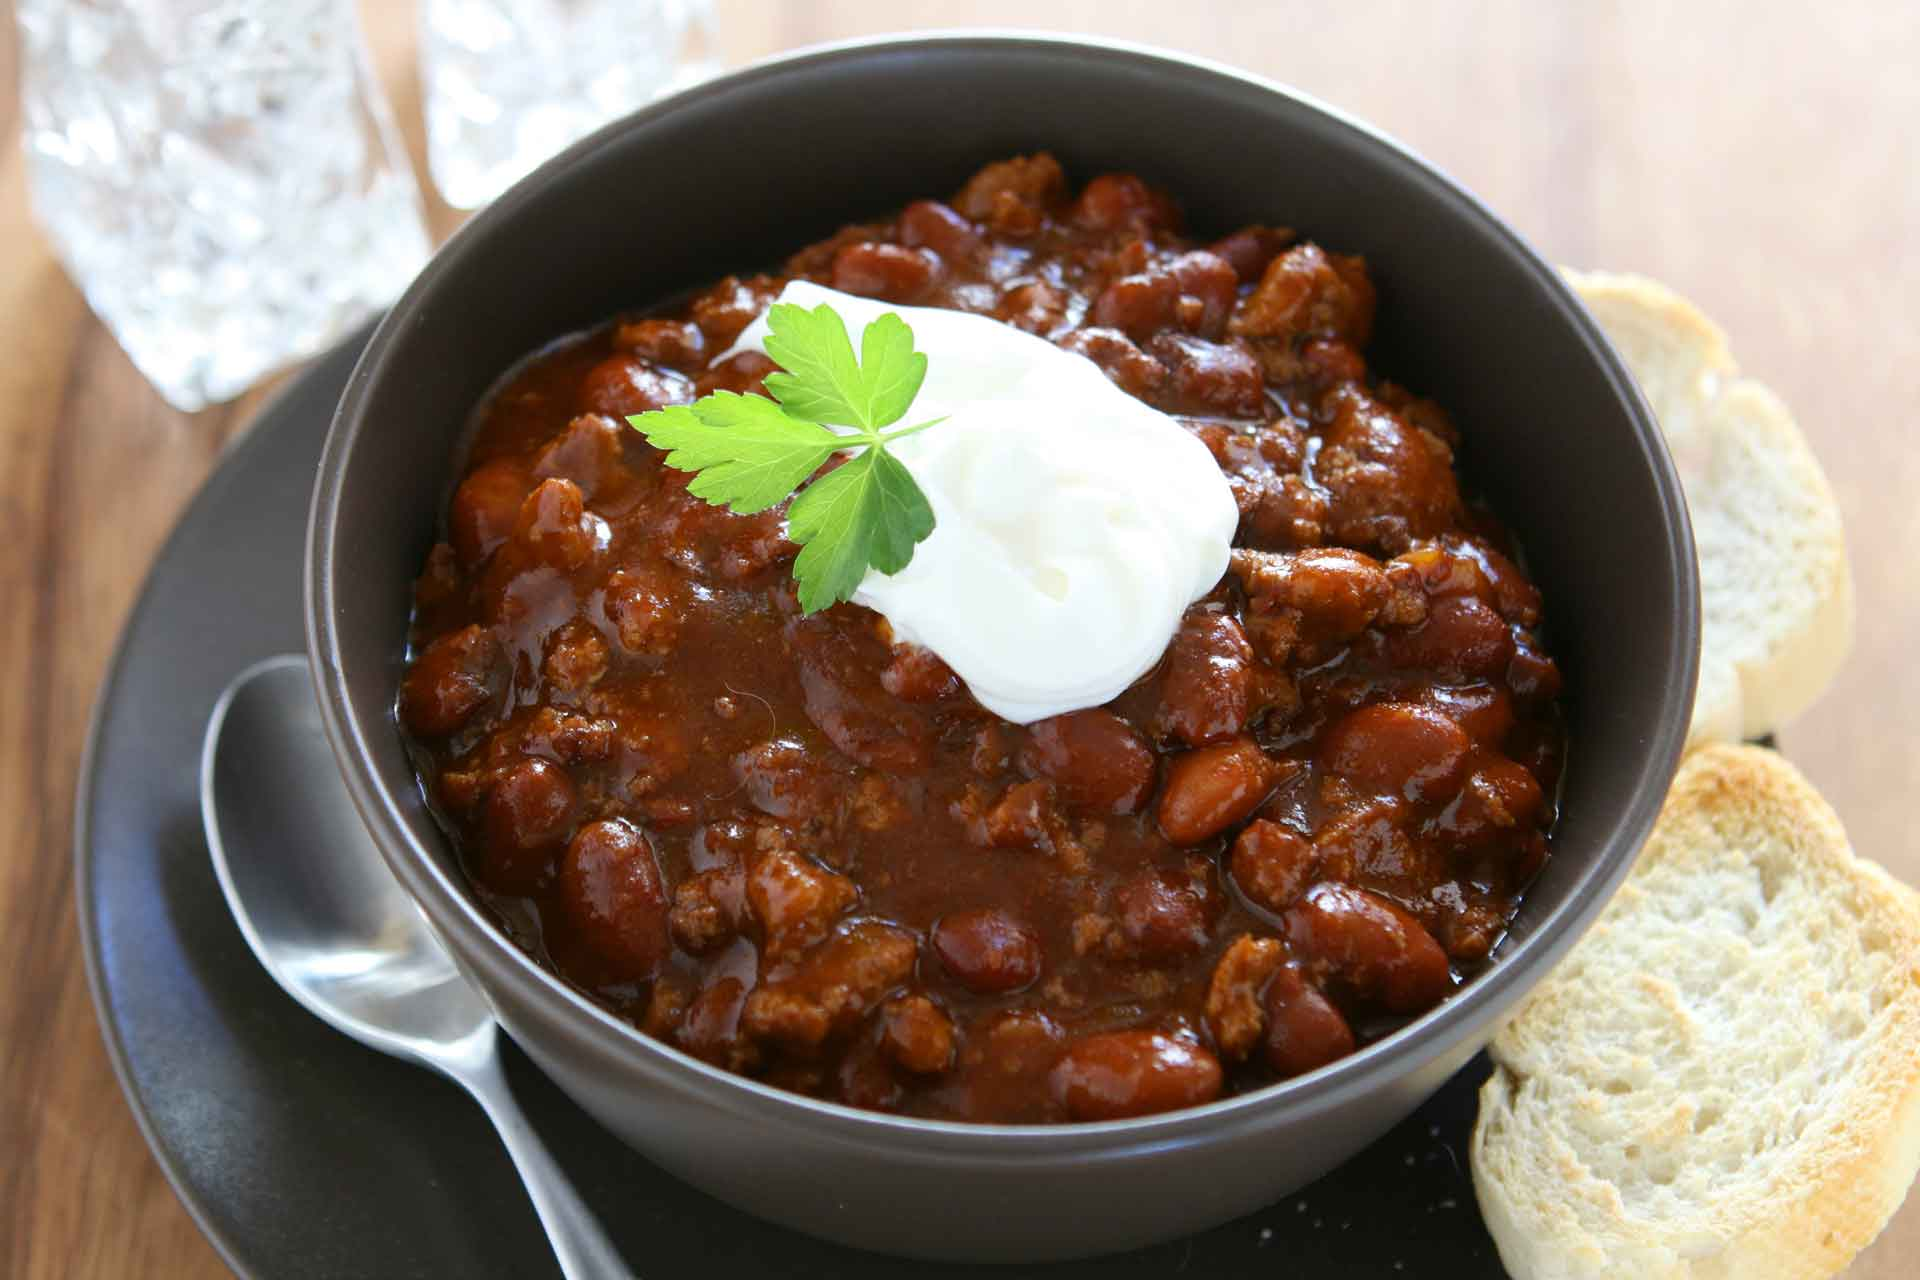 ... quick and easy easy chilli con carne 148 shares facebook twitter yield